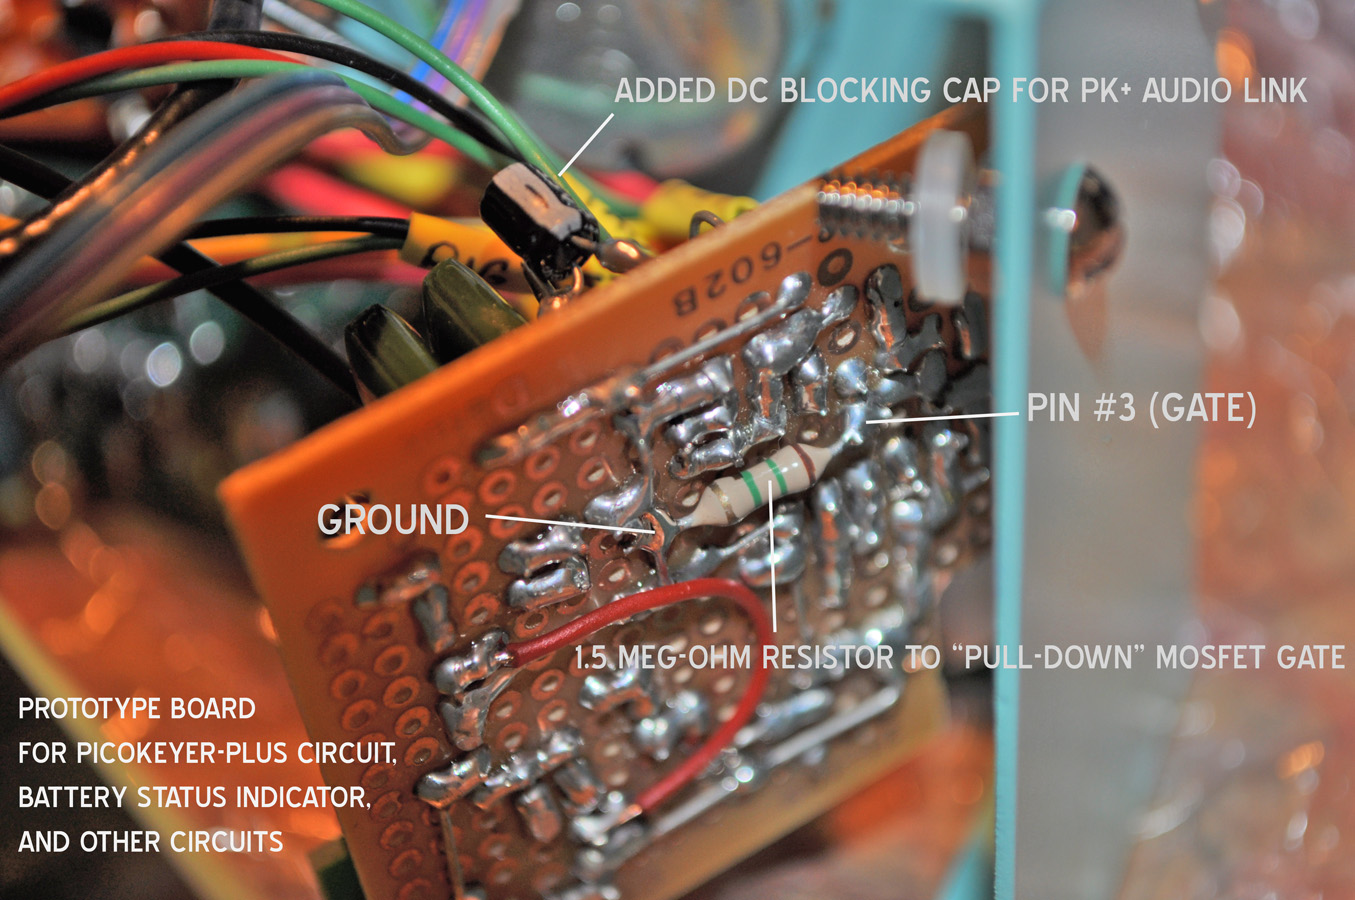 Pixie Transceiver Side Tonehtml In Hitizexytgithubcom Source Electronic Circuits Page 715 Nextgr Code Search Engine